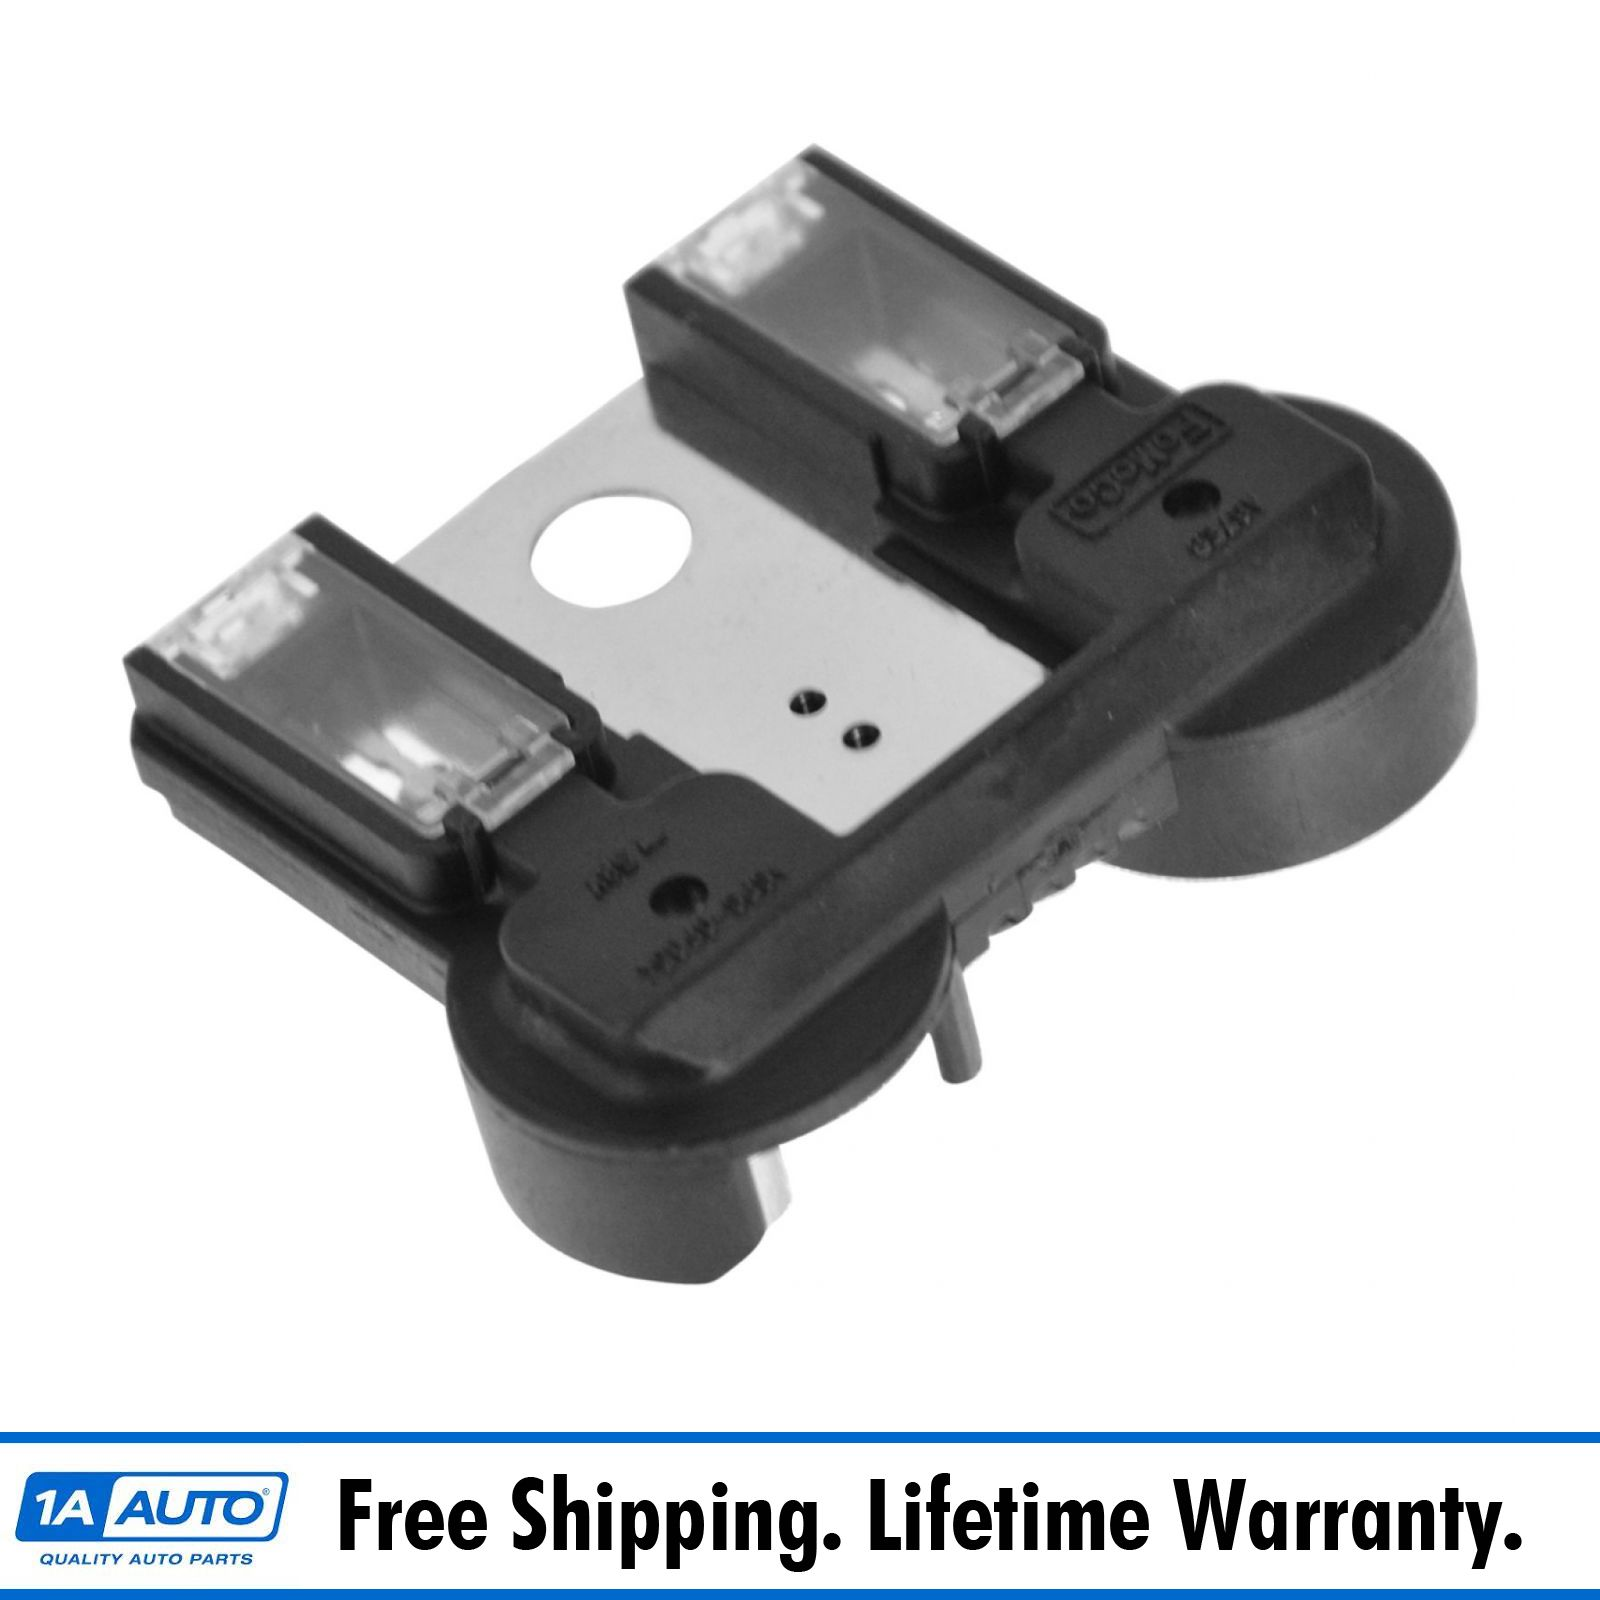 hight resolution of oem fuse block circuit breaker battery cable mount for ford mercury lincoln